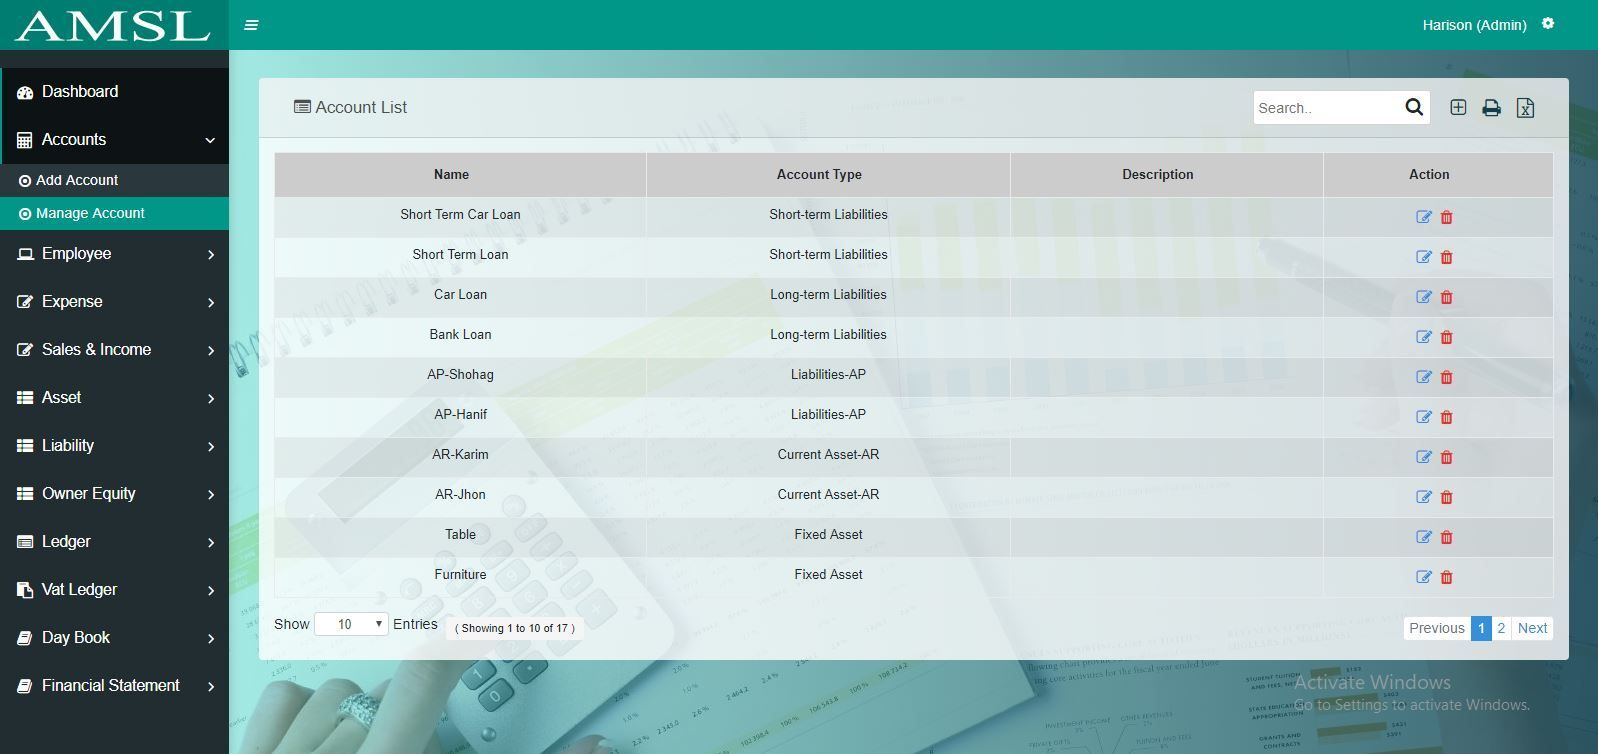 AMSL - Service Based Accounting Management System  Screenshot 12